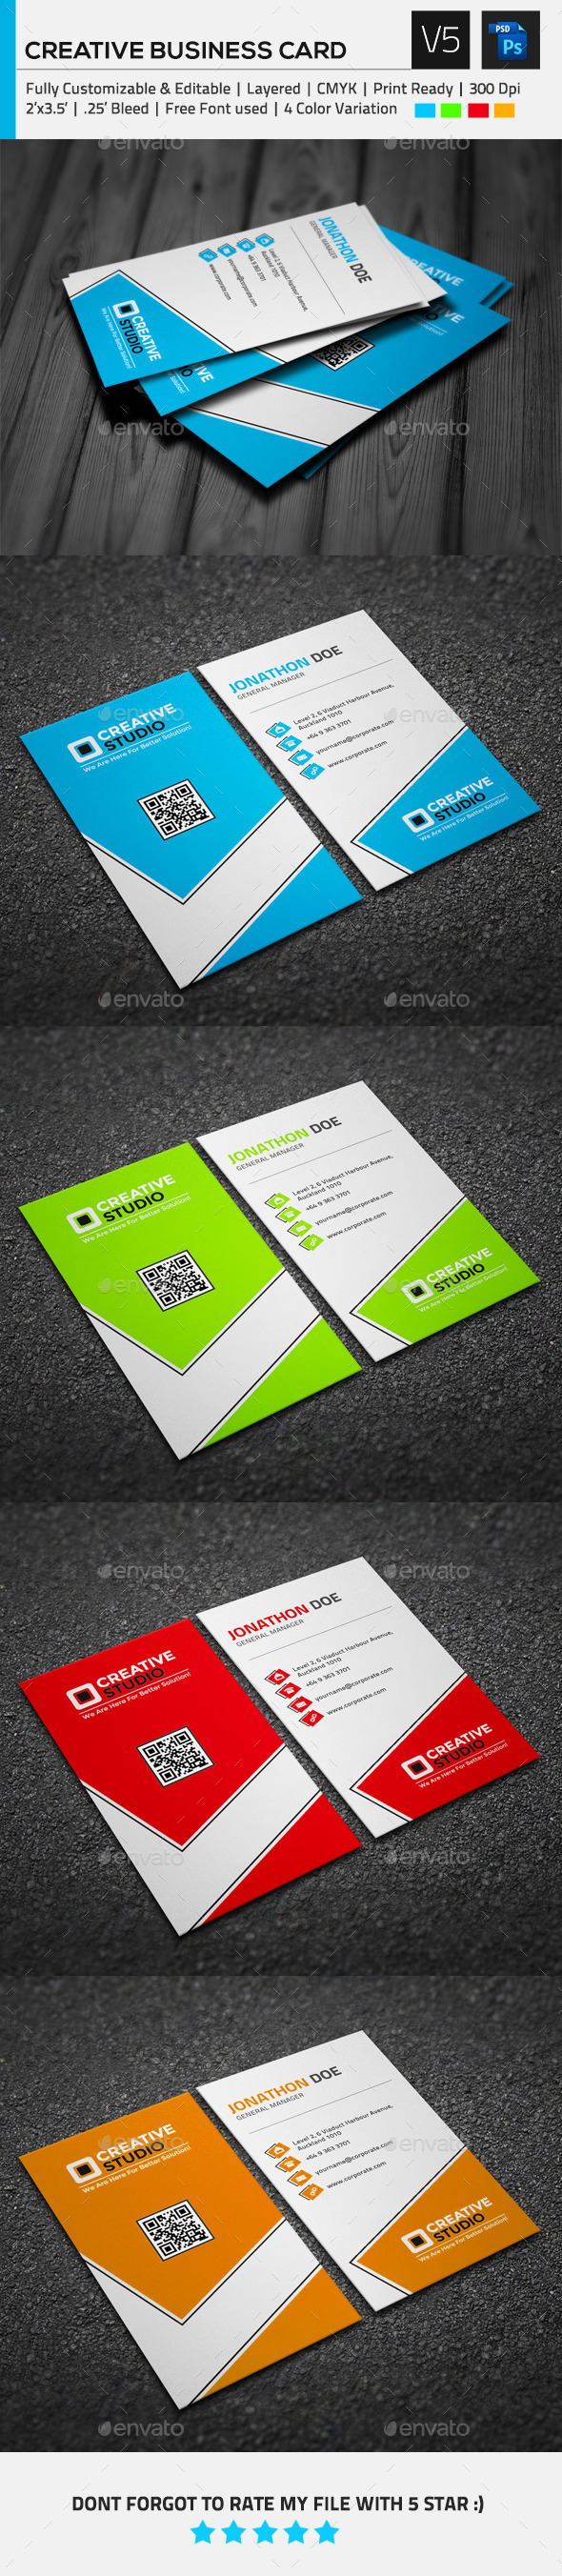 GraphicRiver Creative Business Card V5 10420065